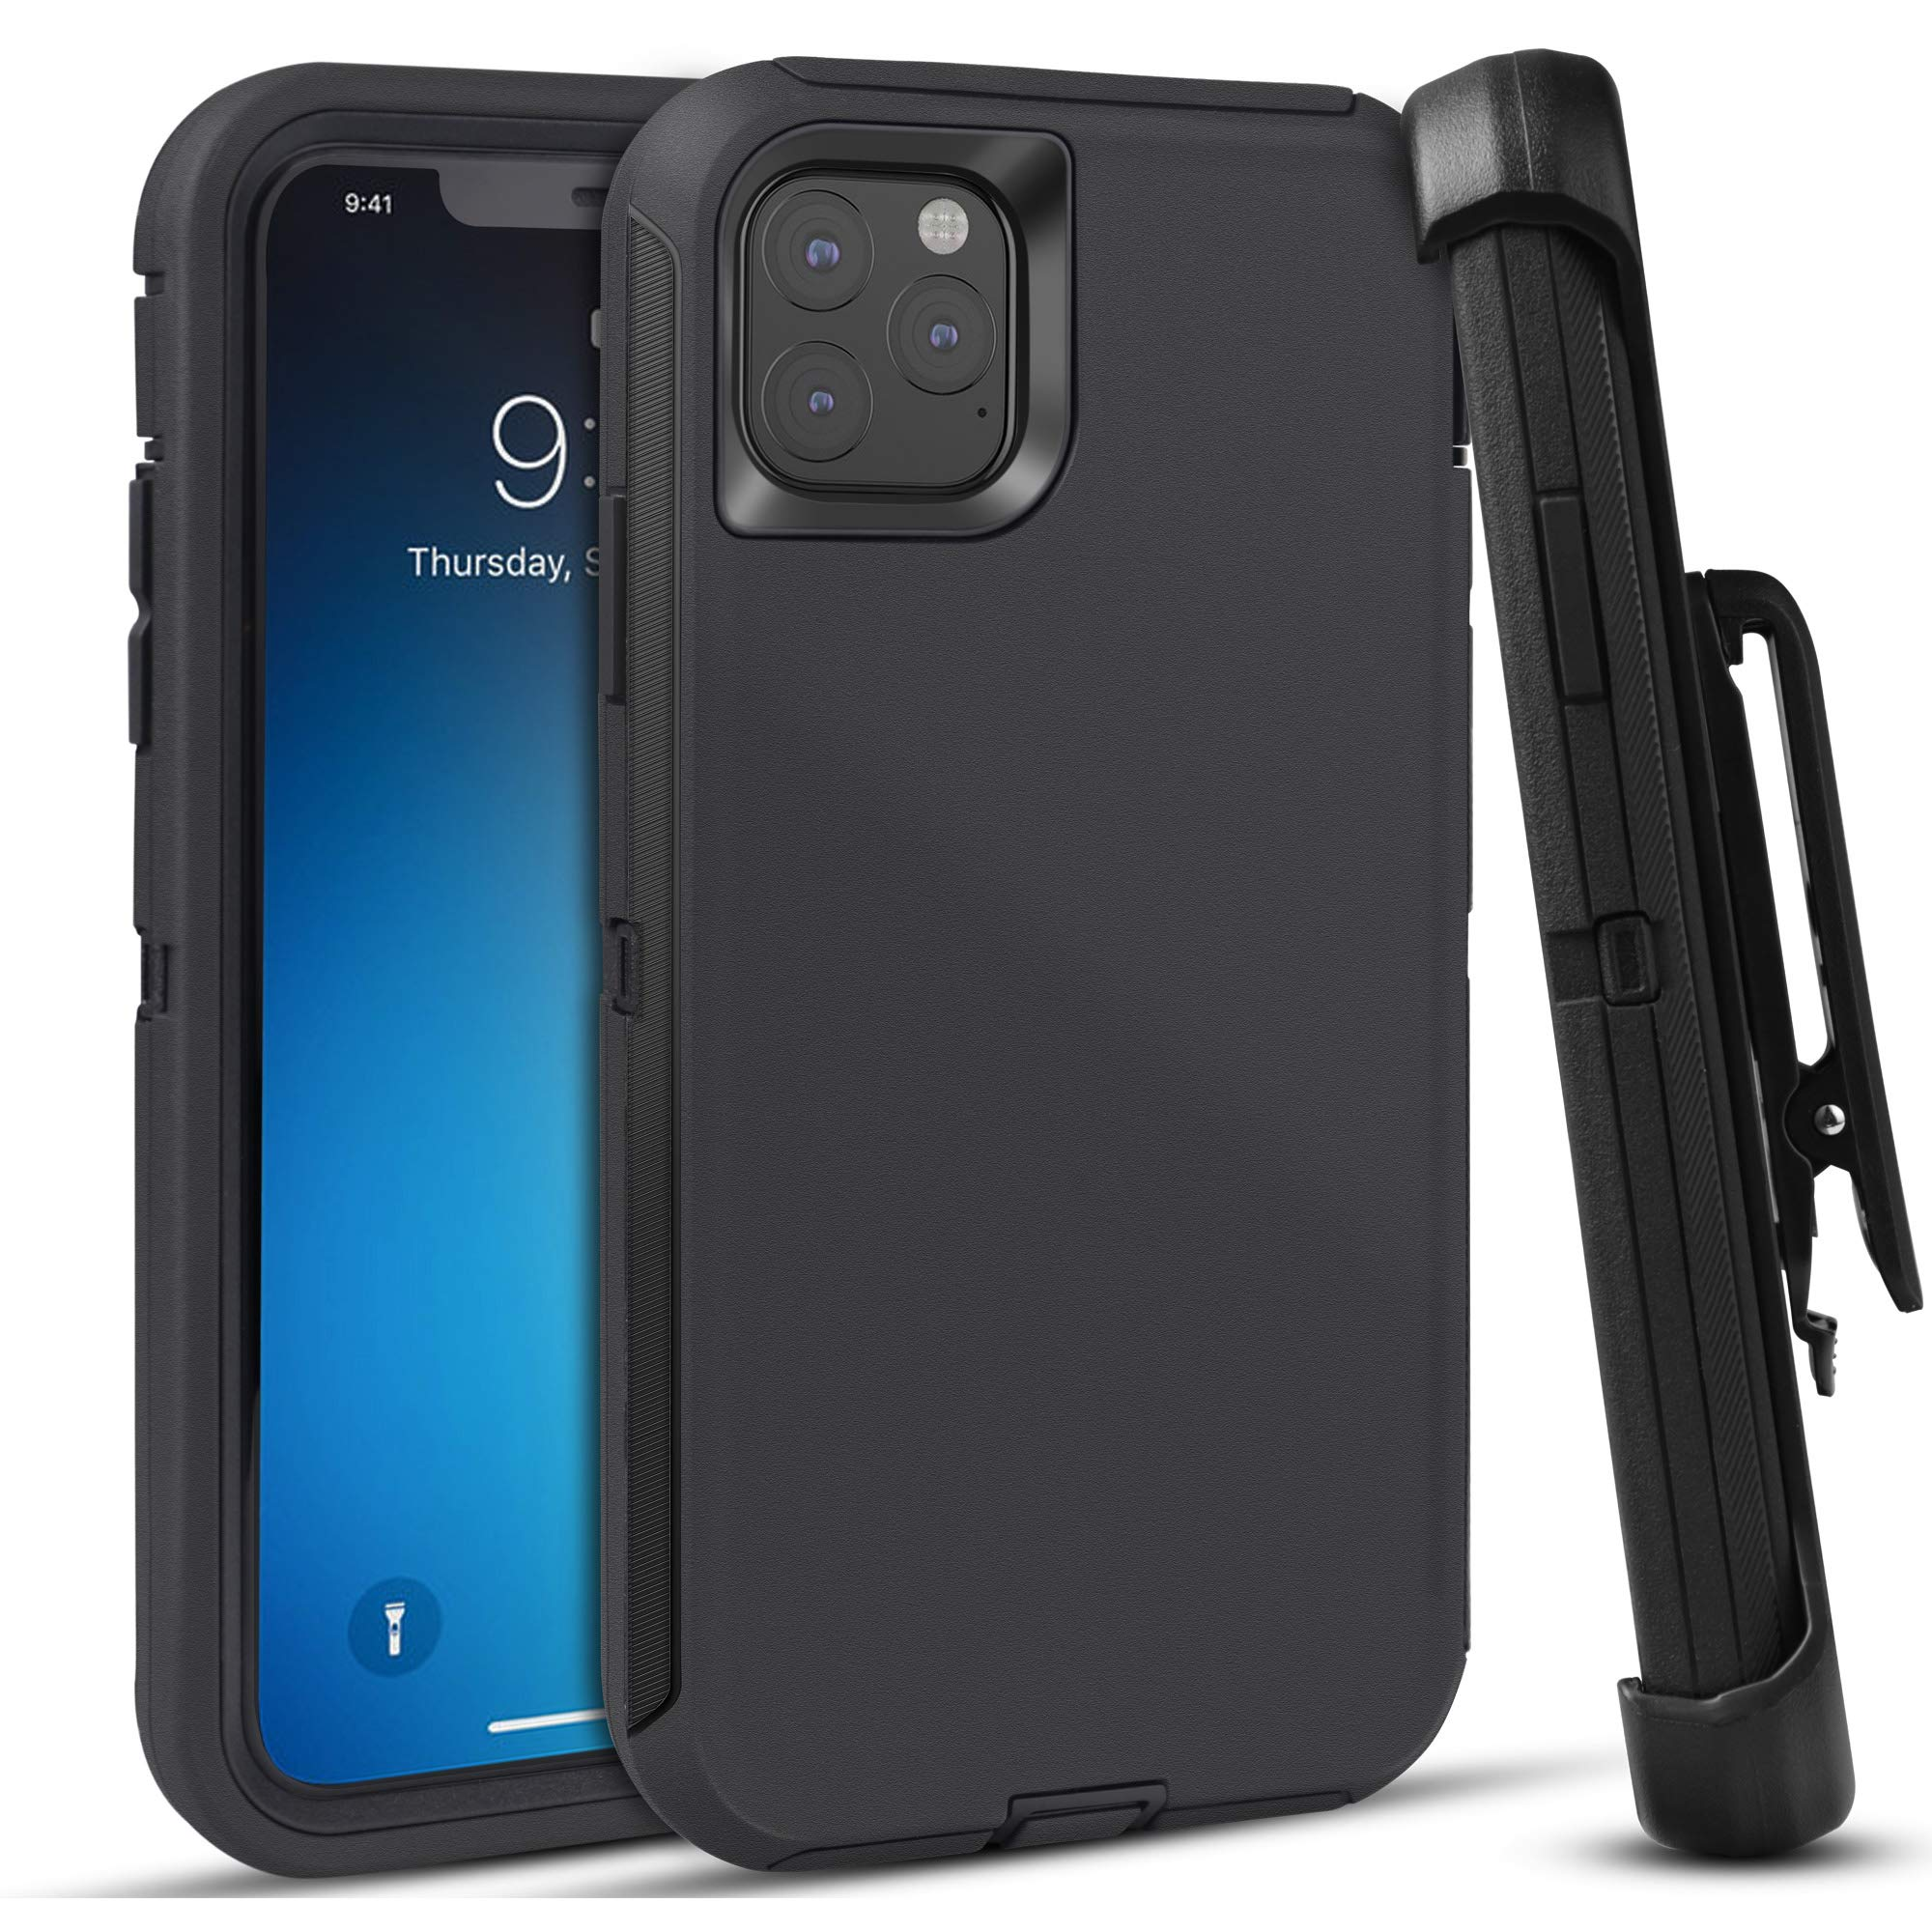 FOGEEK Case for iPhone 11 Pro, Heavy Duty Rugged Case, Belt Clip Holster Kickstand Protective Cover [Shockproof] Compatible for iPhone 11 Pro [5.8 Inch] (Black)